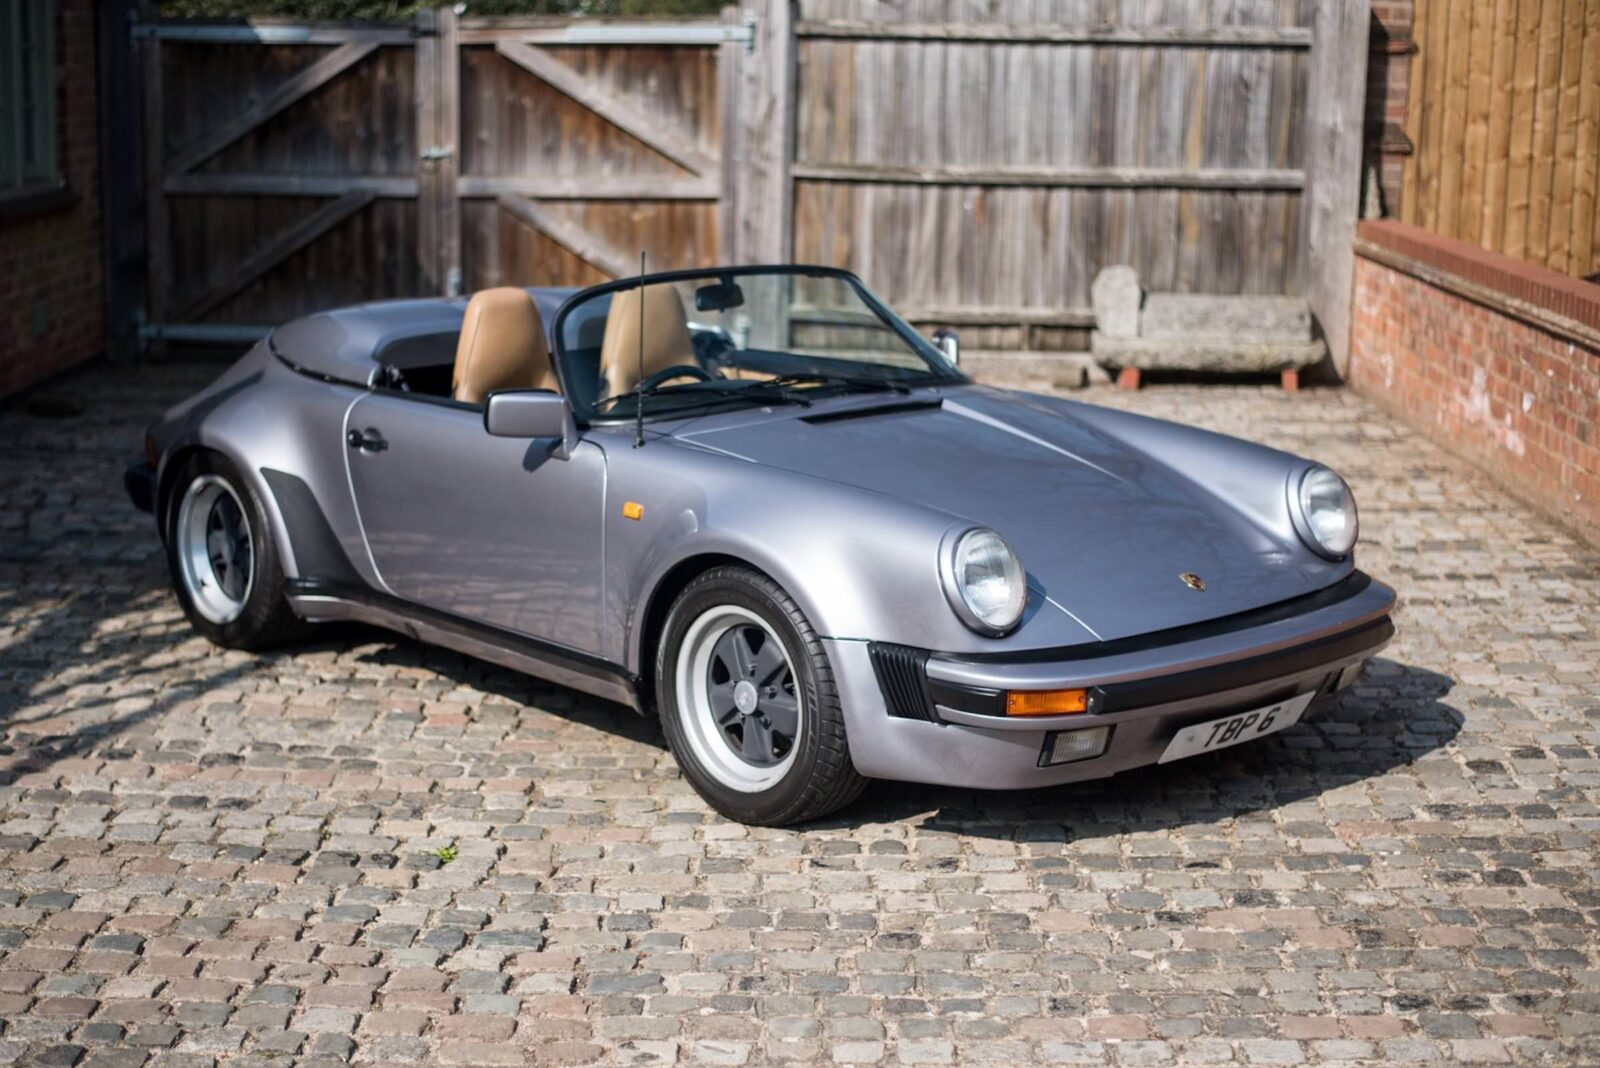 1989 Porsche 911 Speedster The First 911 Speedster And